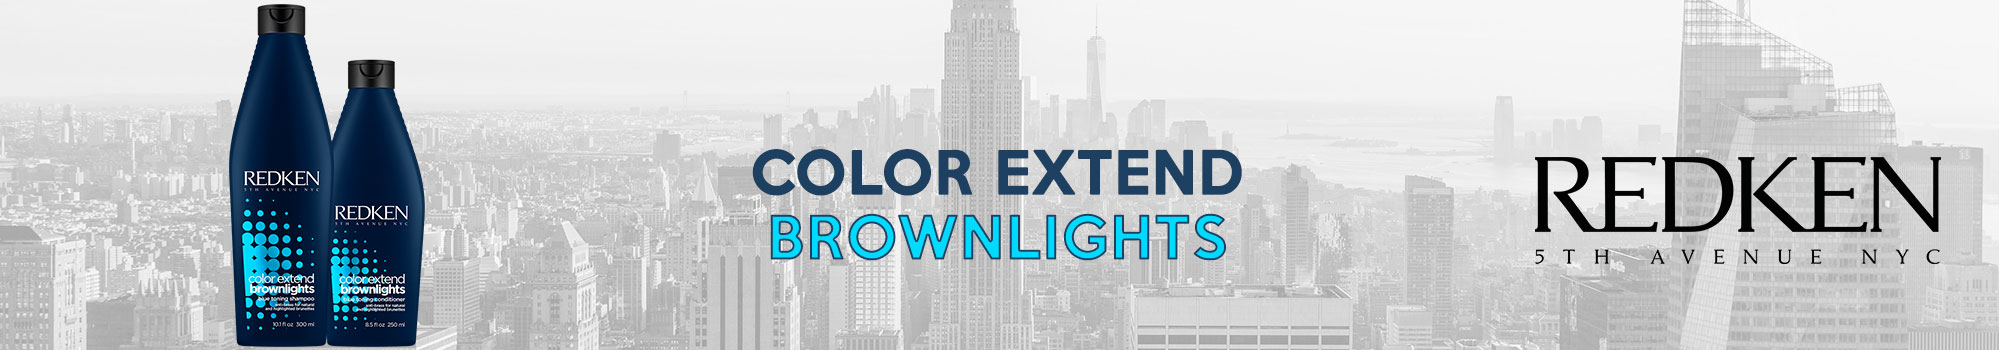 Color Extend Brownlights Redken